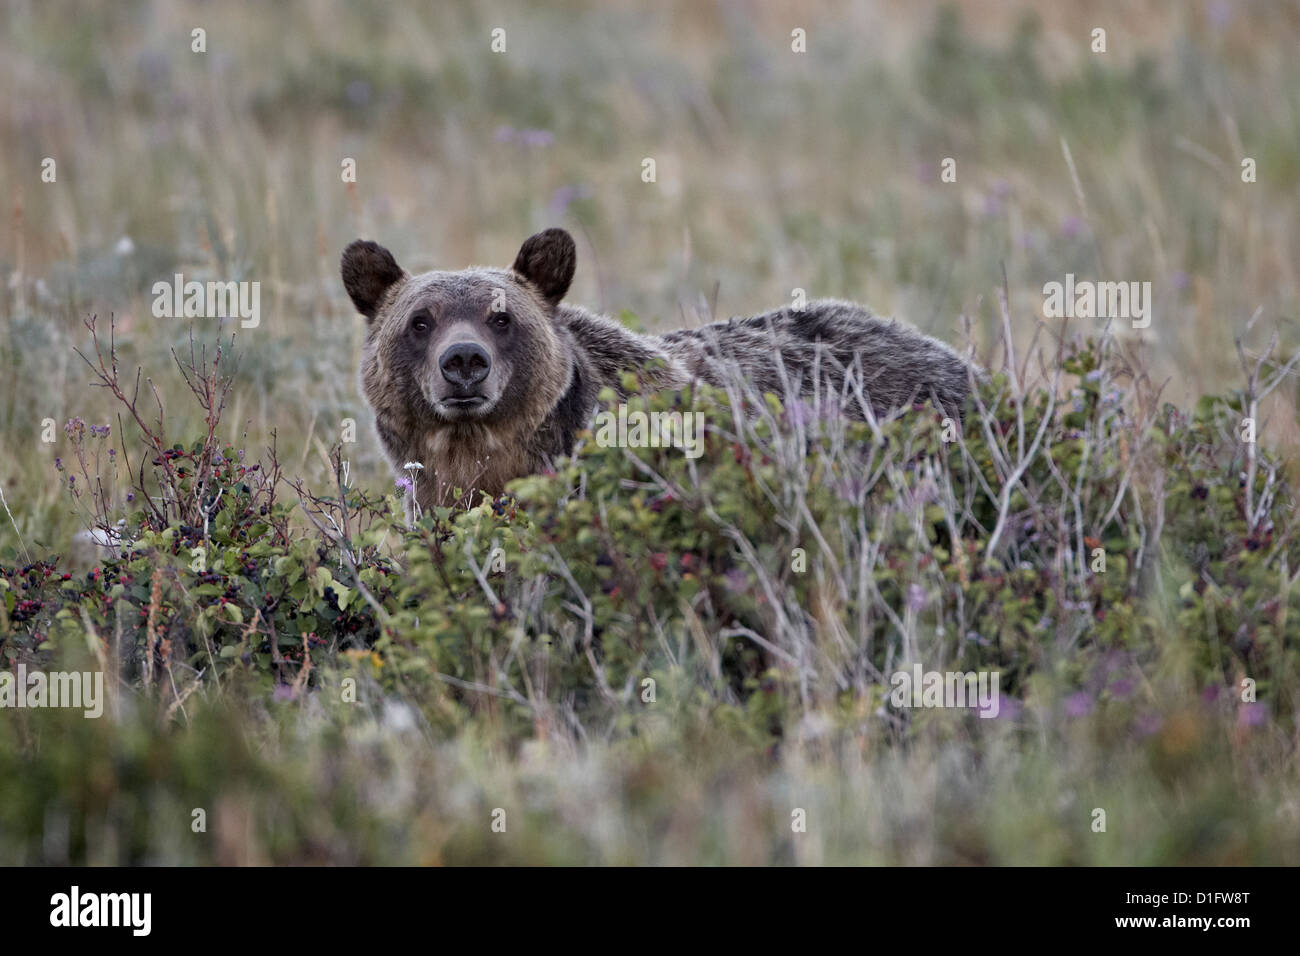 Grizzly bear (Ursus arctos horribilis), Glacier National Park, Montana, United States of America, North America Stock Photo